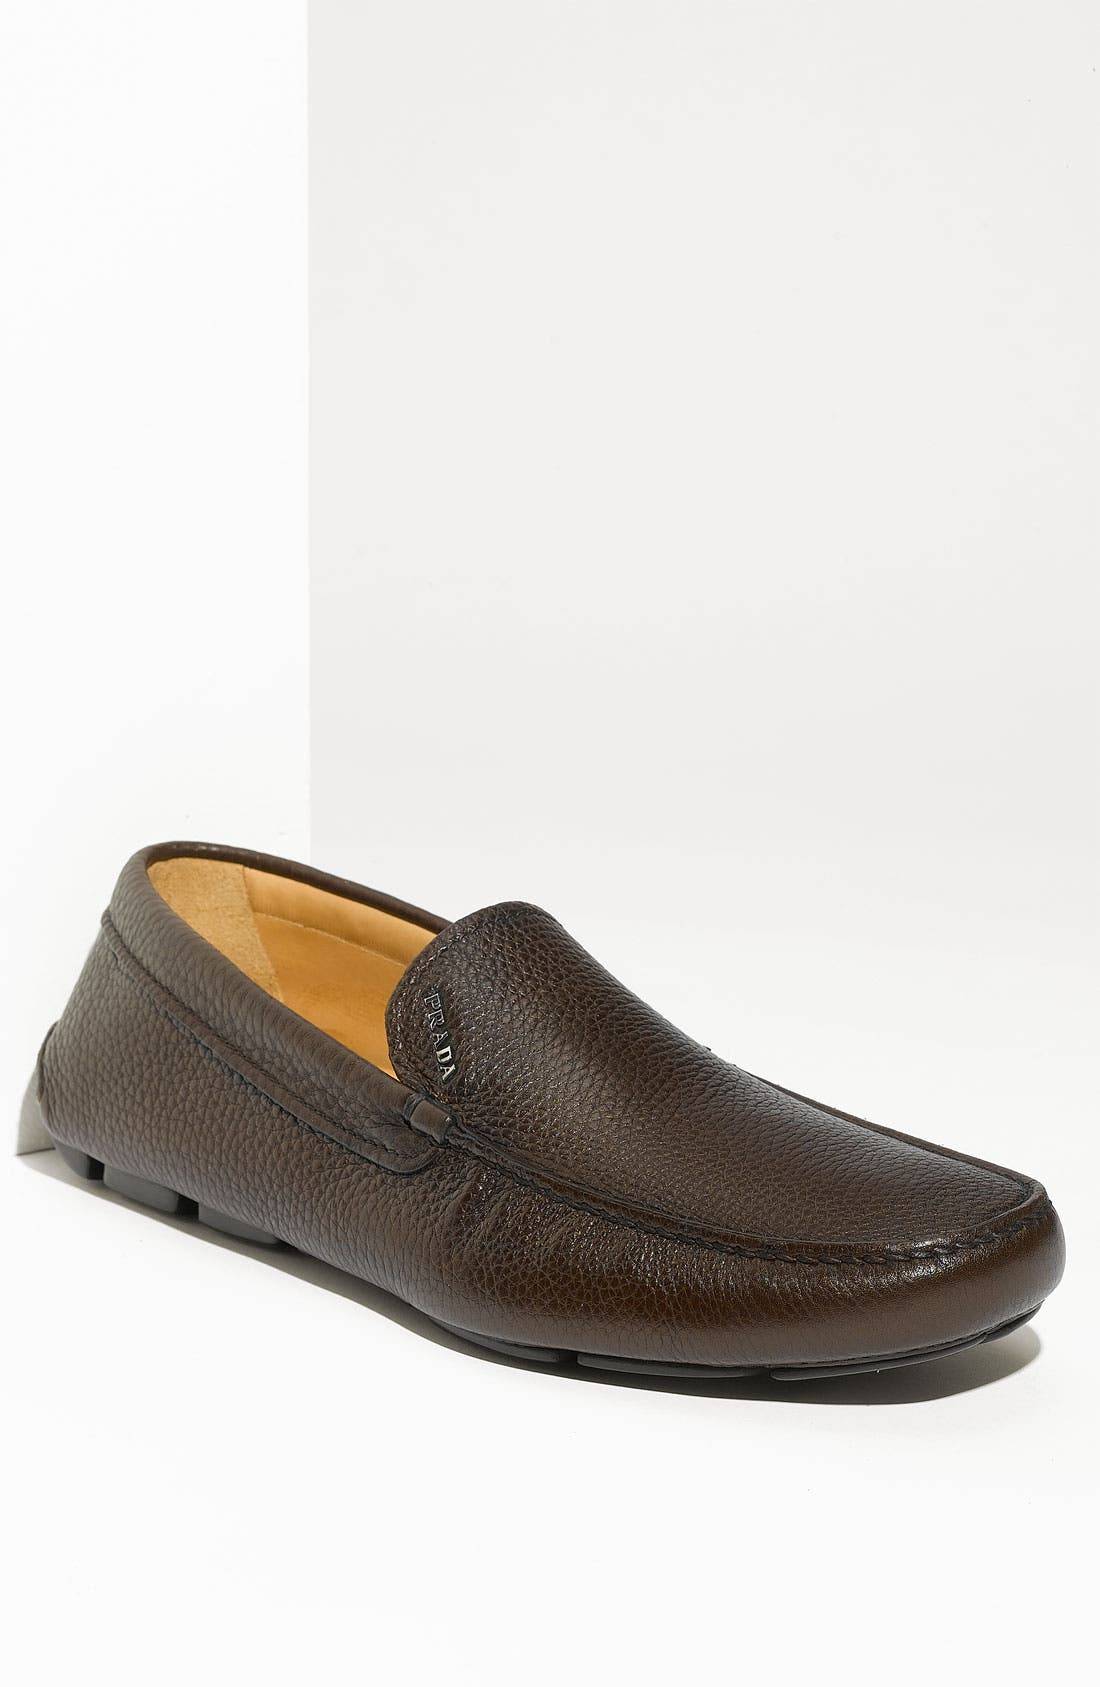 Alternate Image 1 Selected - Prada Pebbled Leather Driving Shoe (Men)